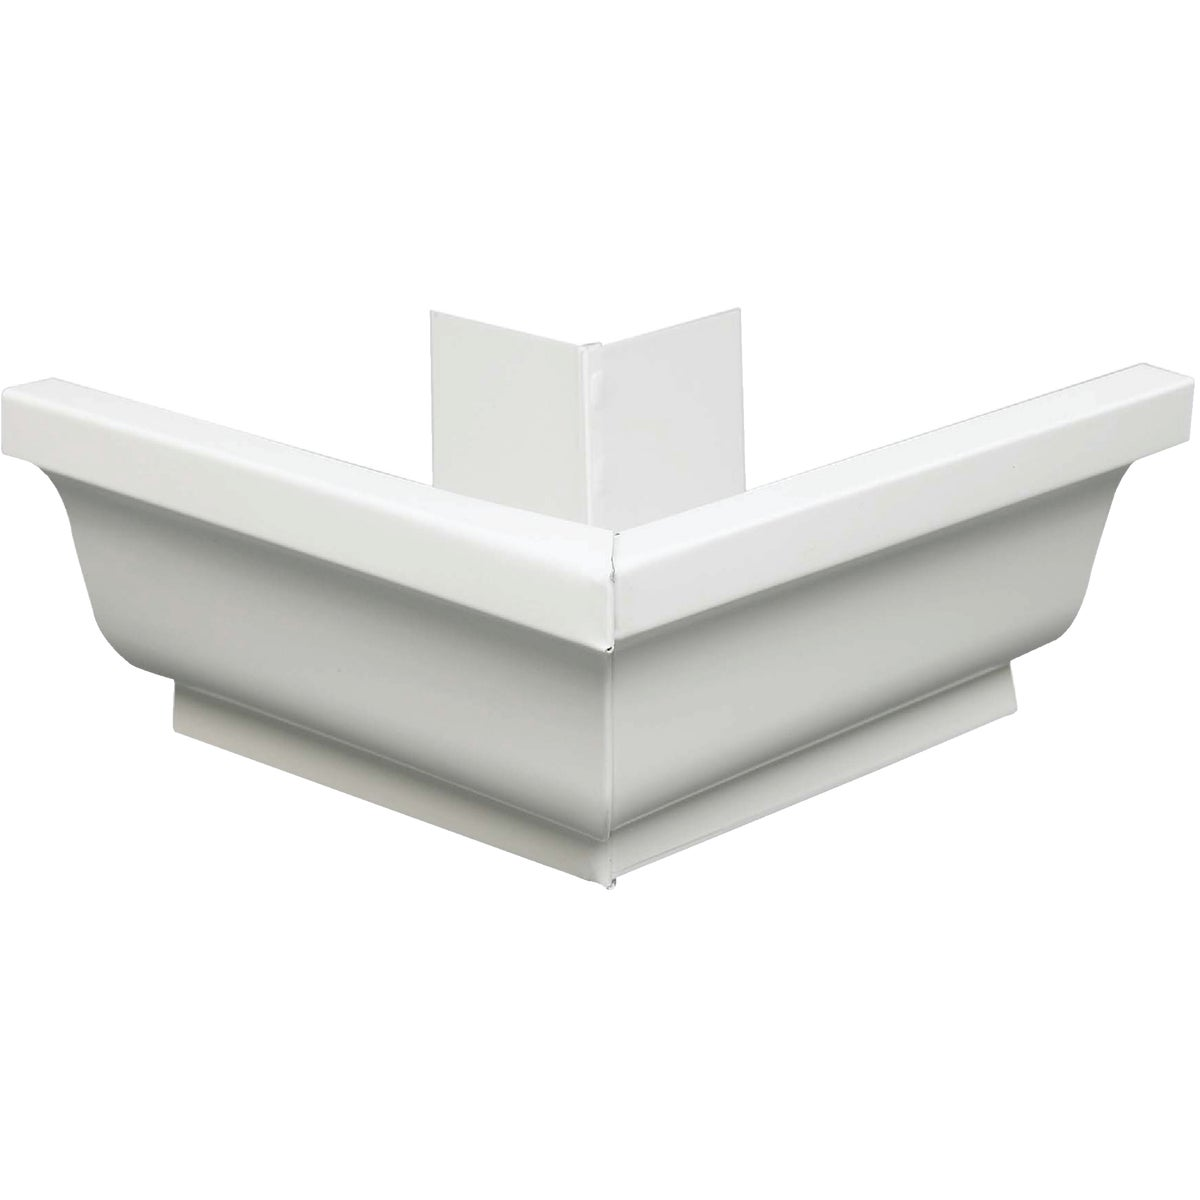 "4"" WHITE OUTSIDE MITRE - 19202 by Amerimax Home Prod"